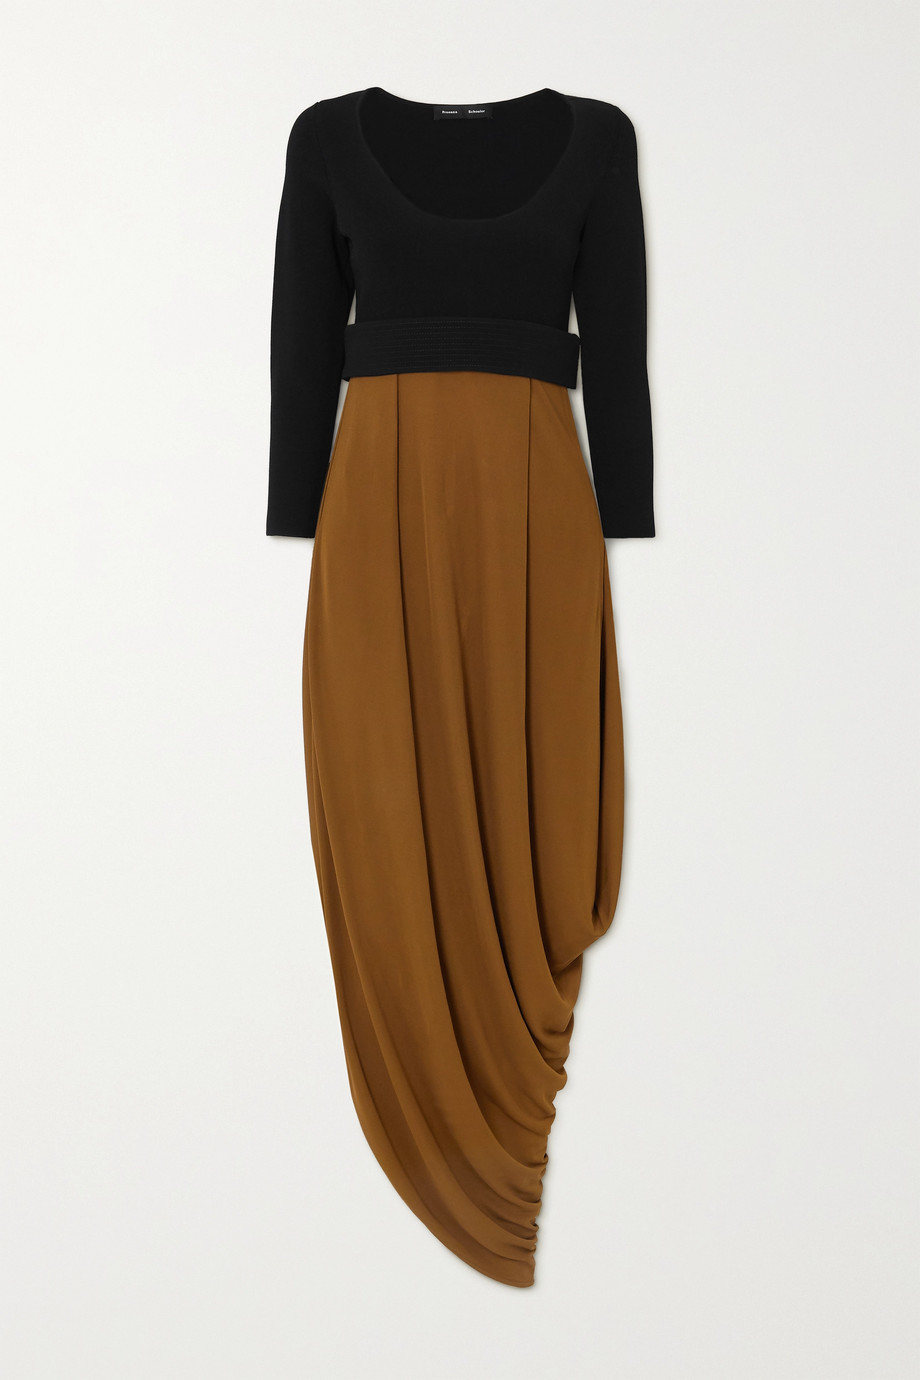 Proenza Schouler Draped two-tone jersey midi dress